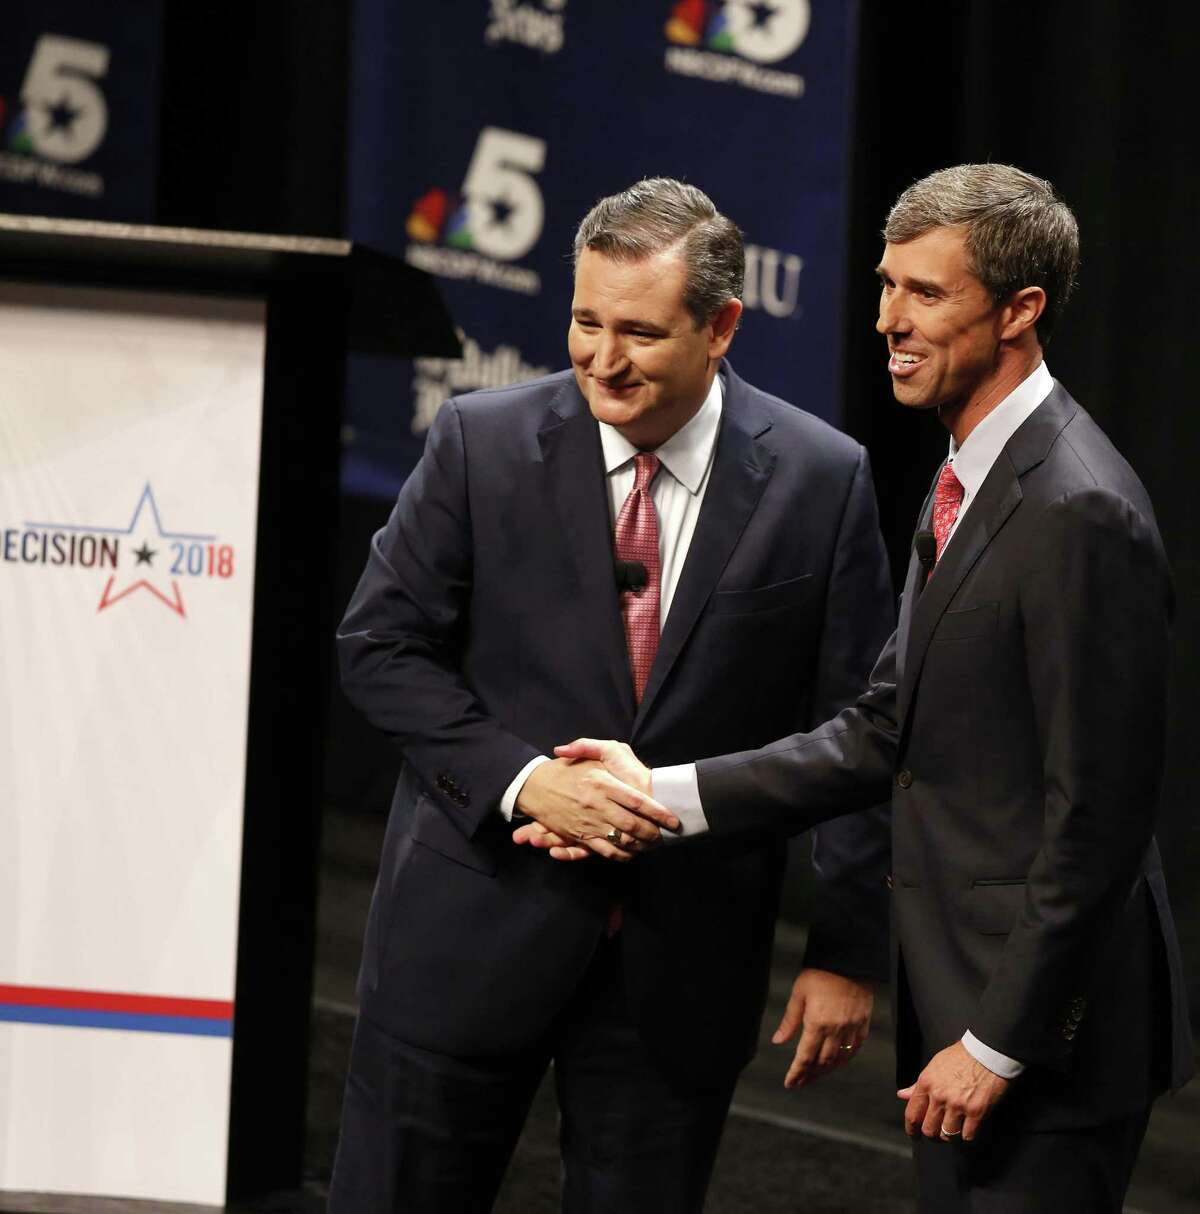 PHOTOS: Internet reacts U.S. Sen. Ted Cruz, R-Texas, and Rep. Beto O'Rourke, D-Texas, appear after a debate at McFarlin Auditorium at Southern Methodist University on Friday. >>Many Twitter users were watching the debate, too. Here are some of the reactions.